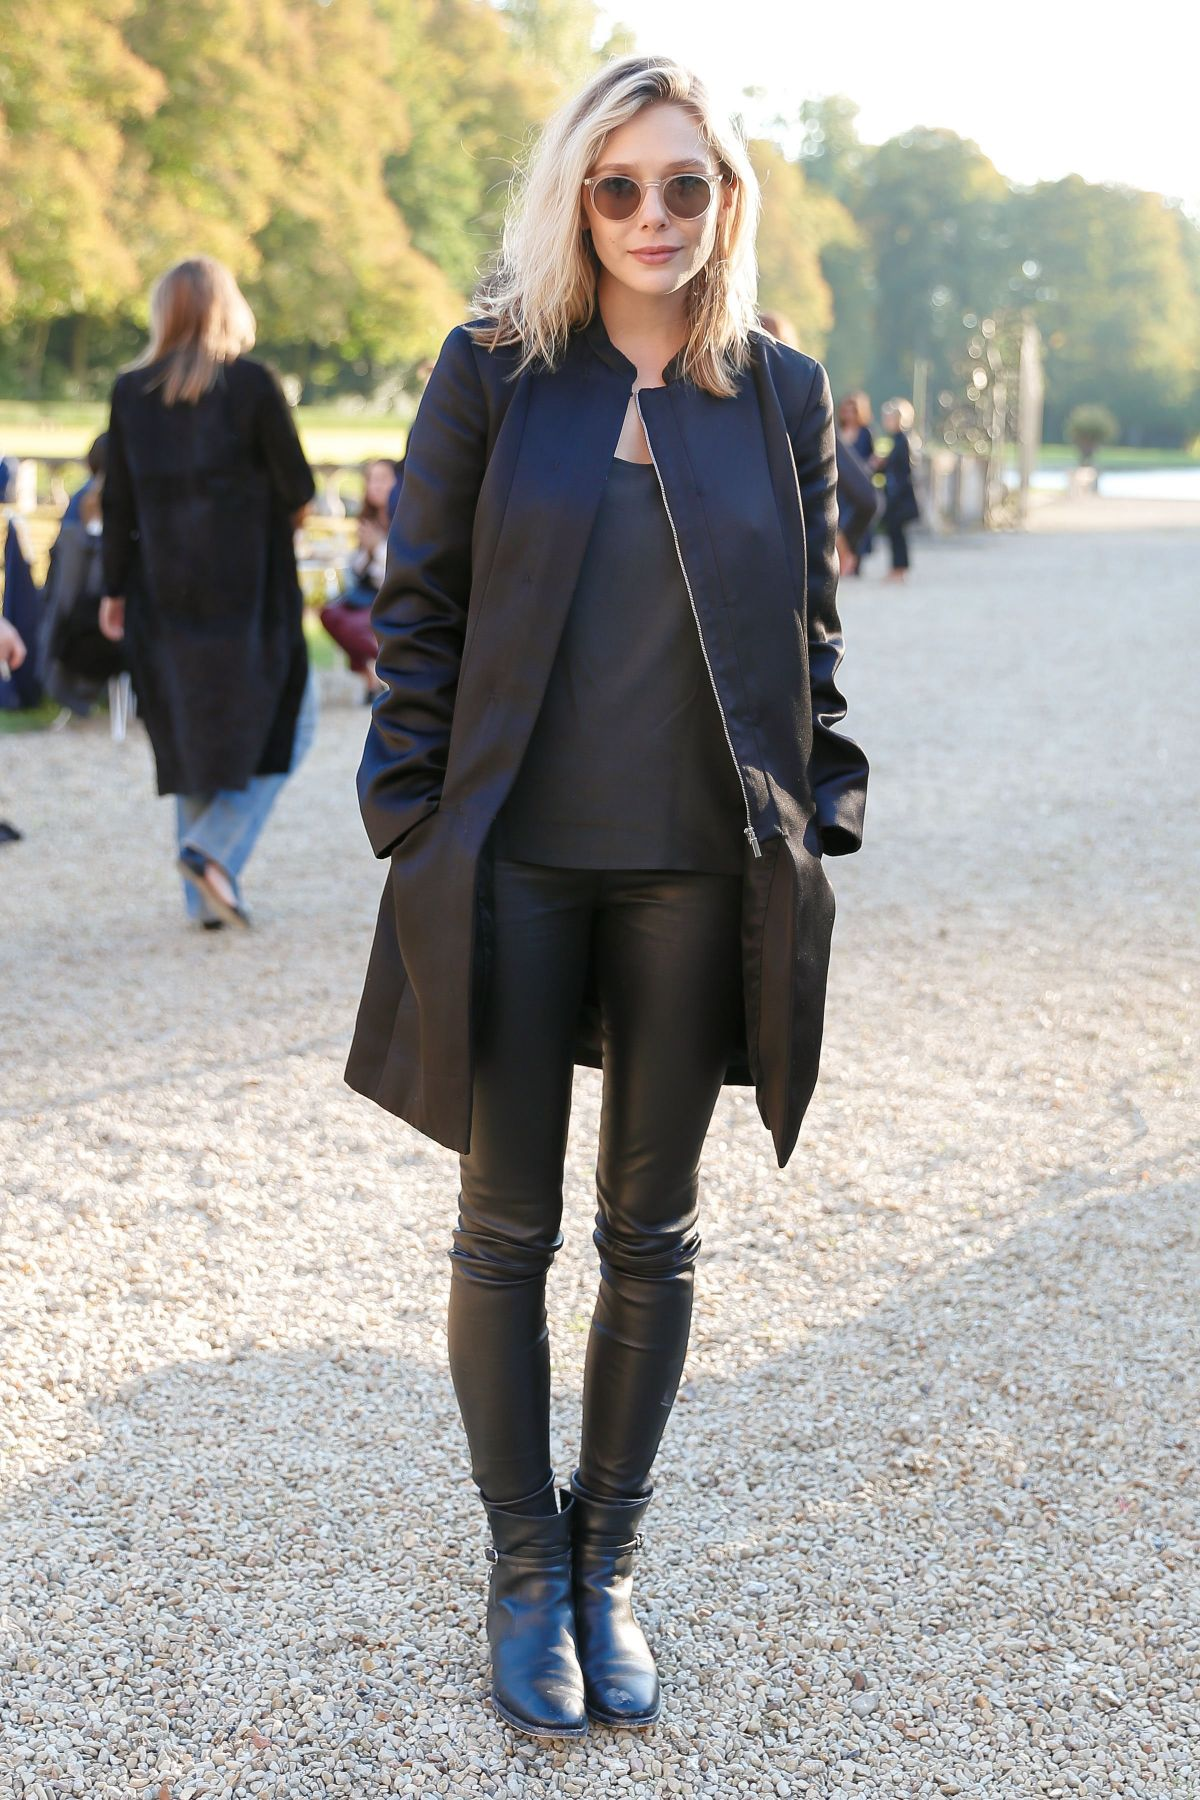 ELIZABETH OLSEN at The Row Fashion Show at Paris Fashion Week 10/01/2015